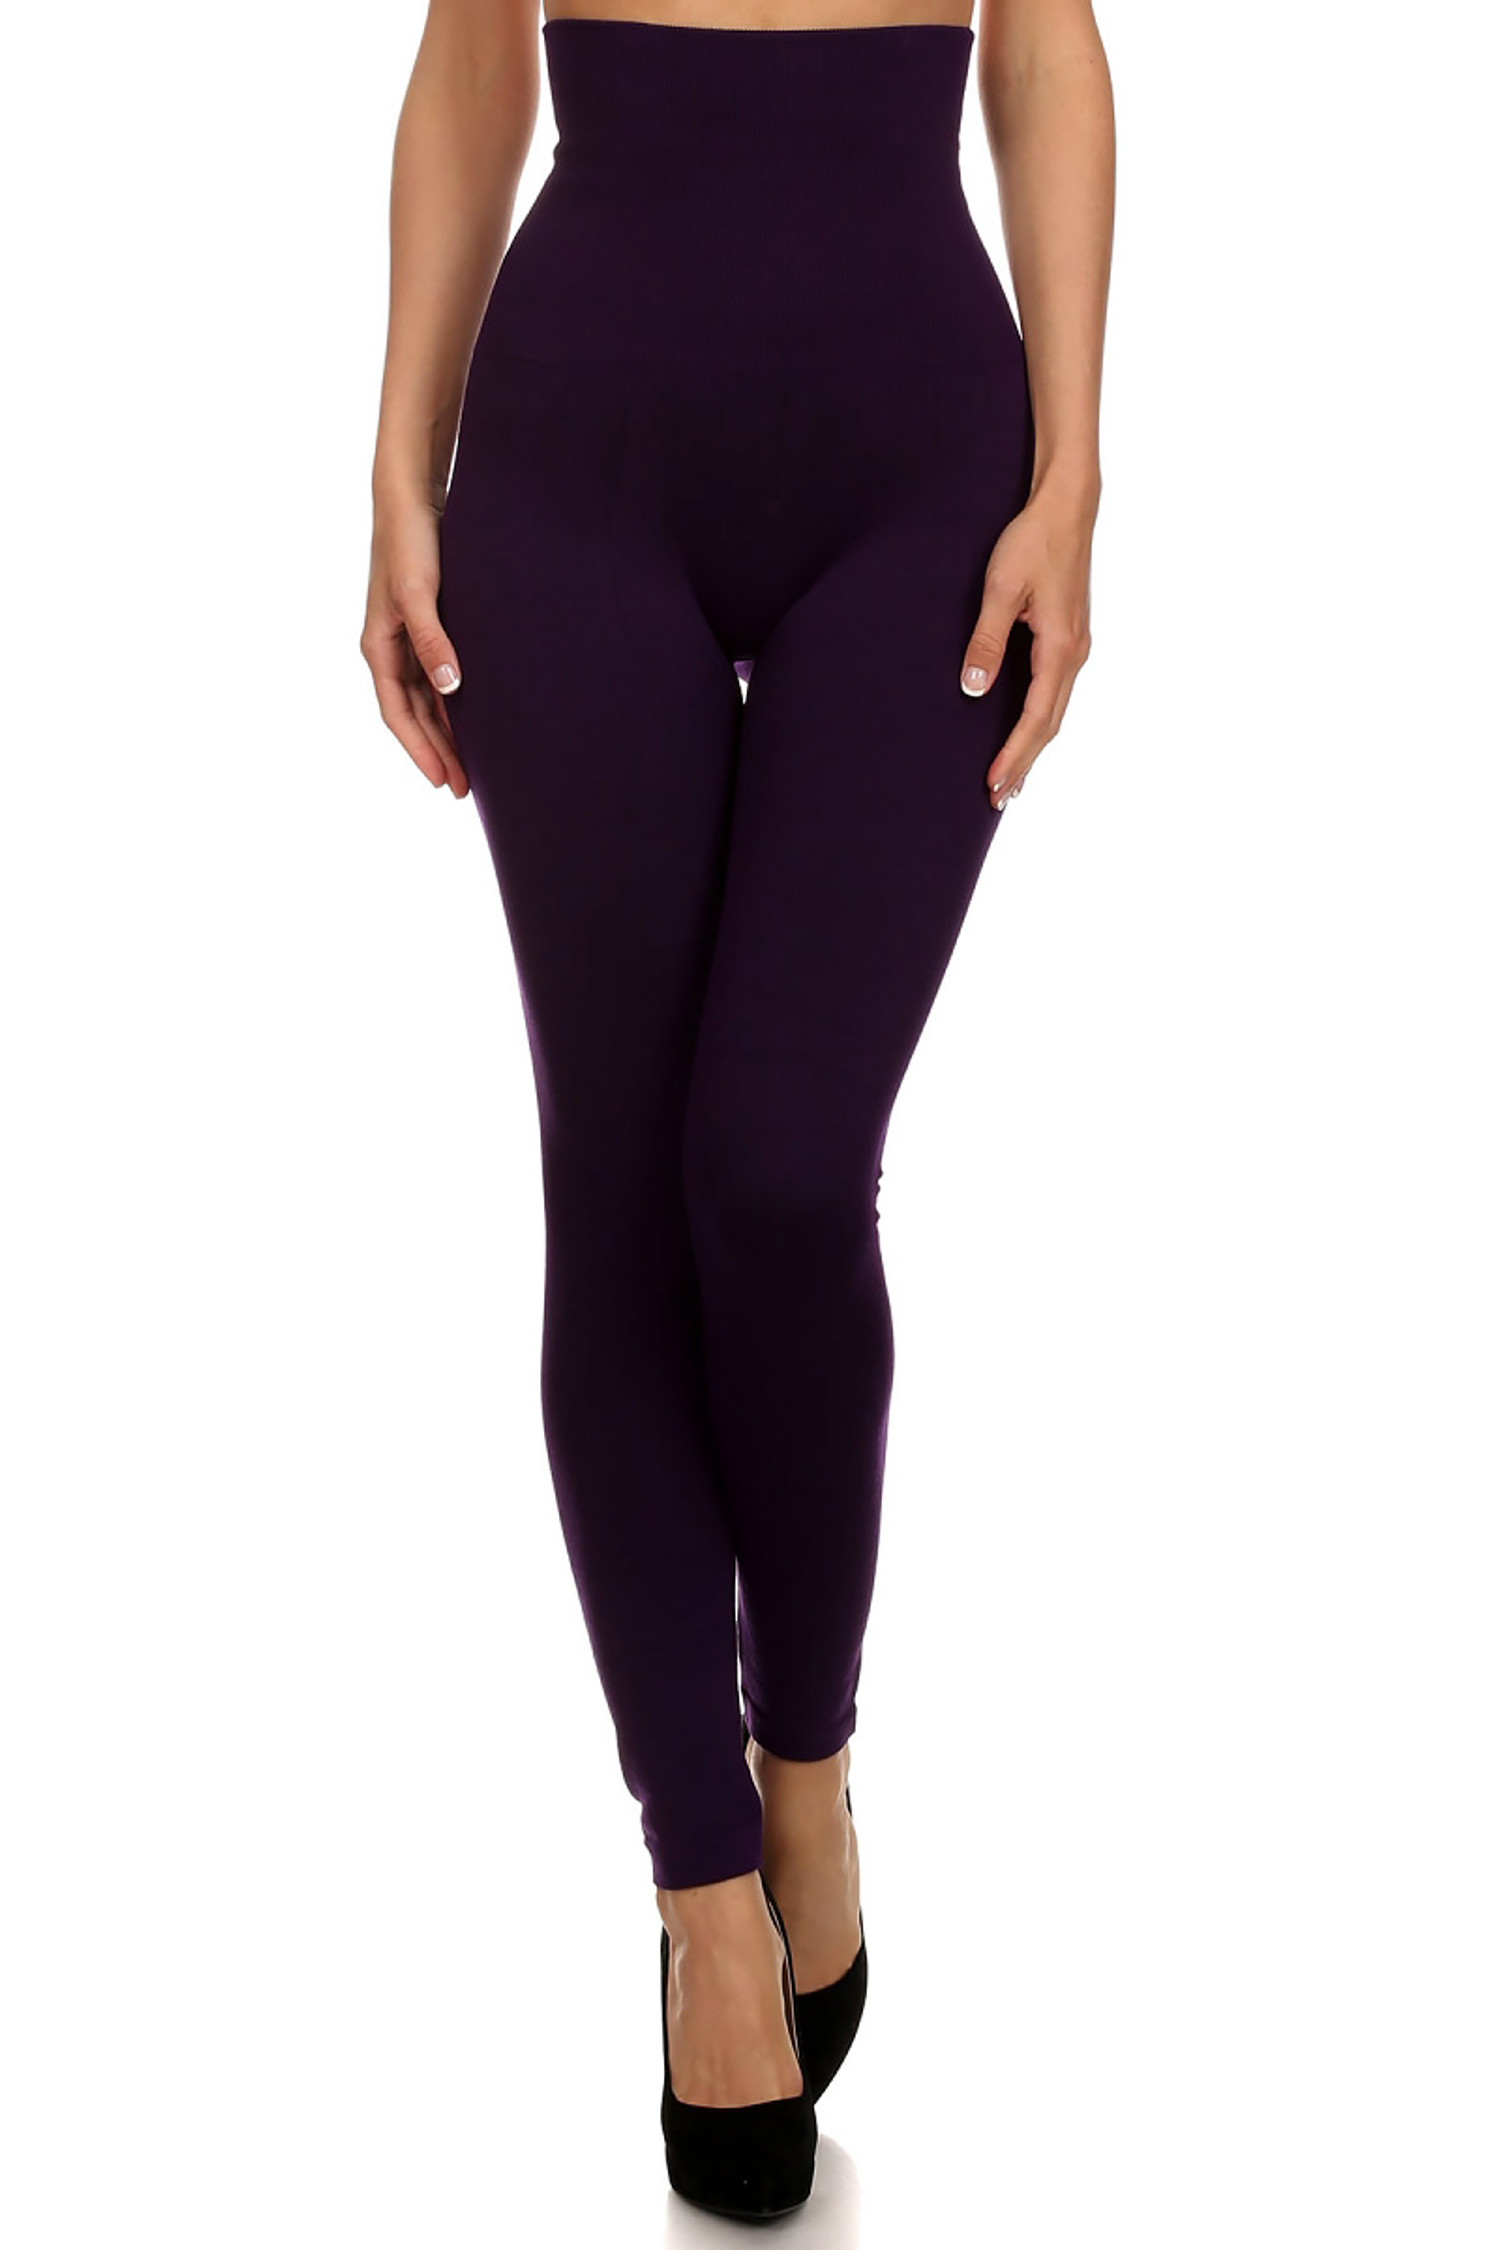 High Waist French Terry Compression Leggings